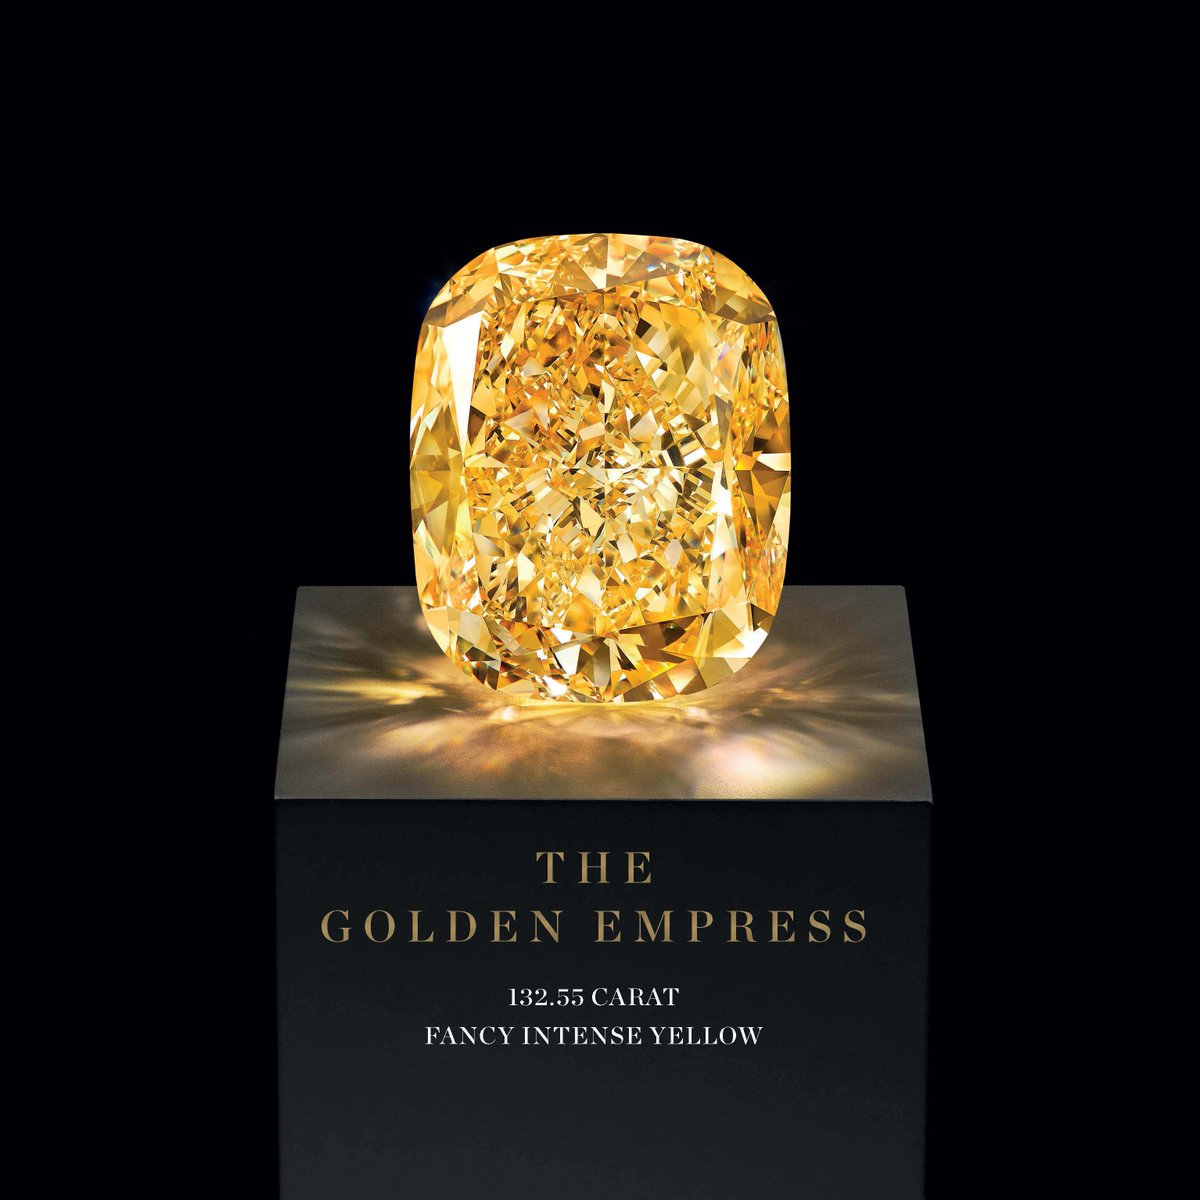 The Golden Empress – a 132.55 carat Fancy Intense Yellow diamond – Now on display at the #DJWE16 https://t.co/l5GtcKVJ2Y